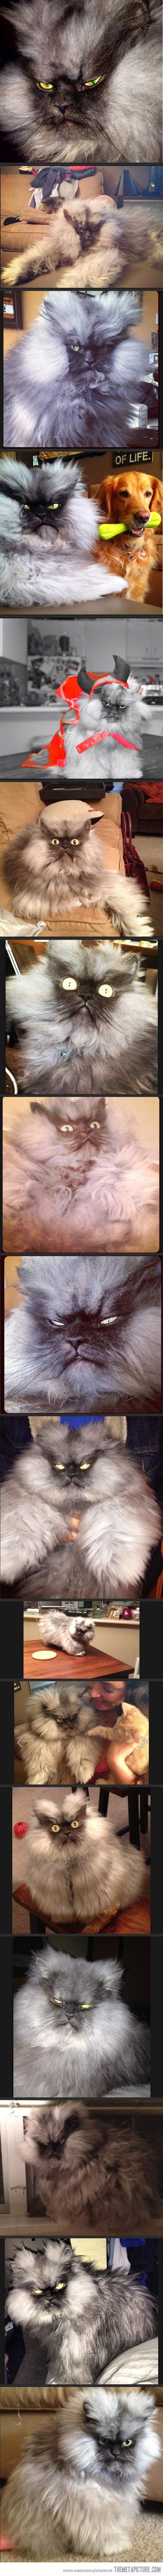 Me as a cat